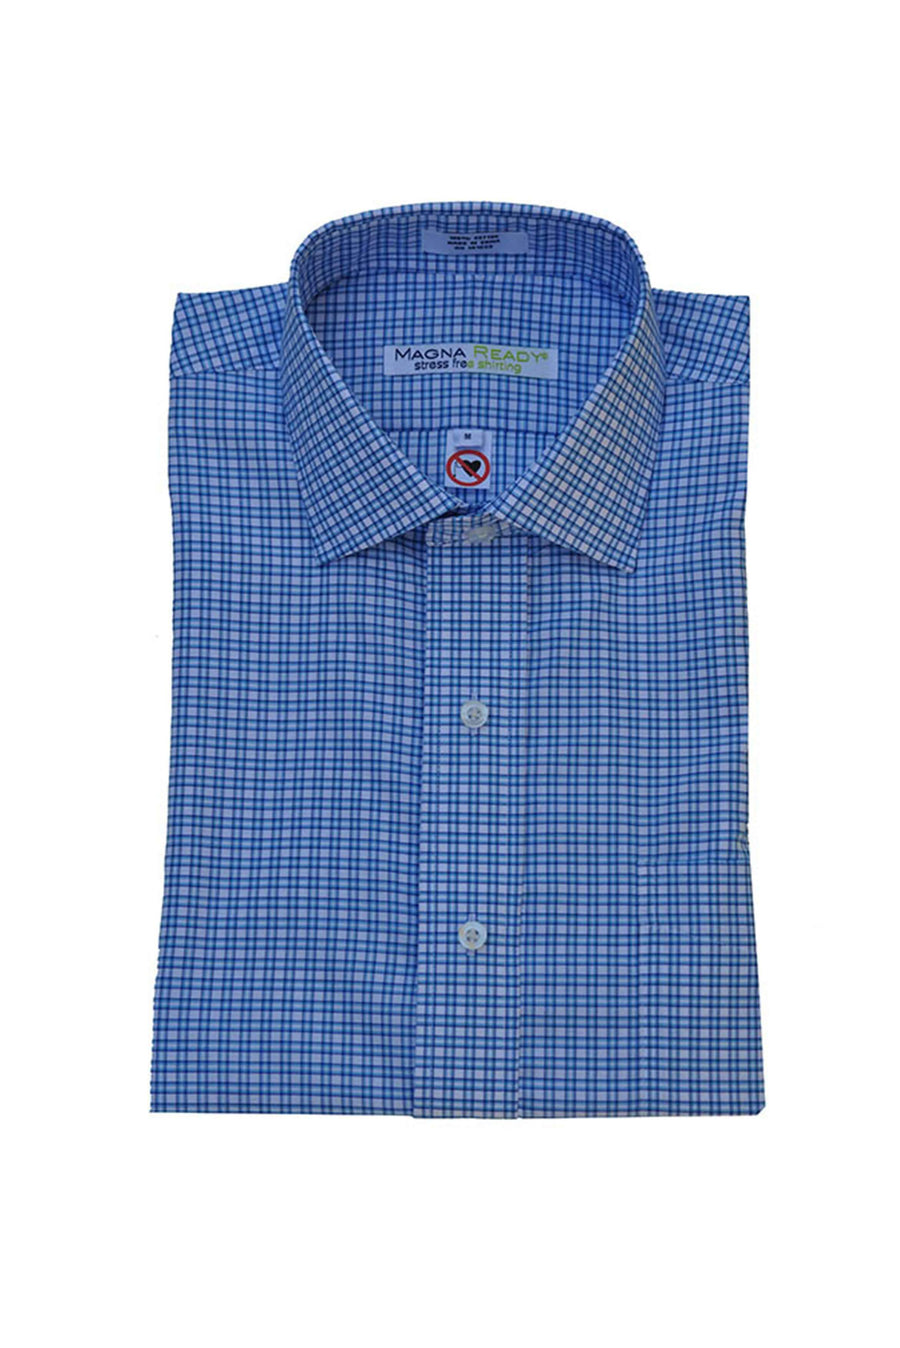 Classic White and Carolina Blue Plaid Short Sleeve Shirt with Magnetic Closures